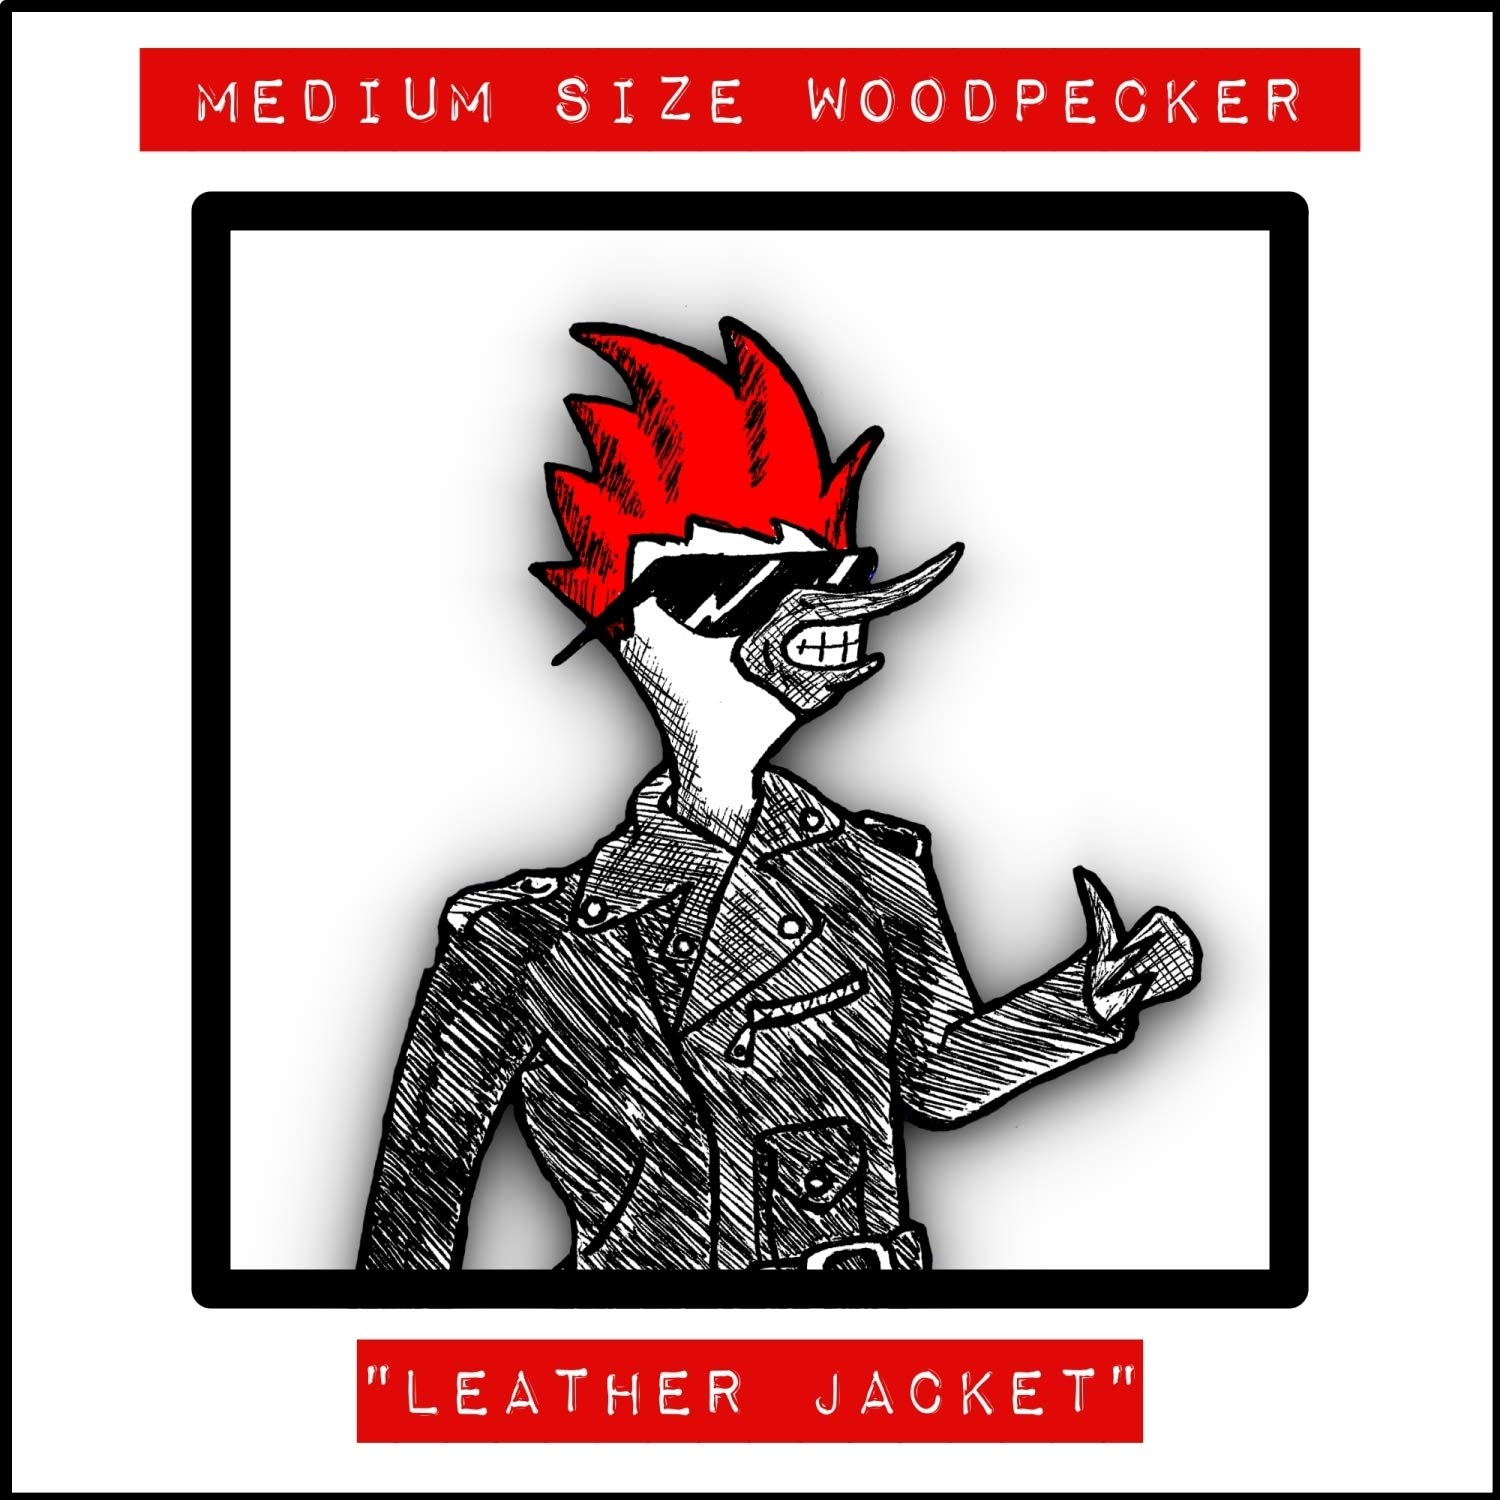 Art for The Vent Song by Medium Size Woodpecker